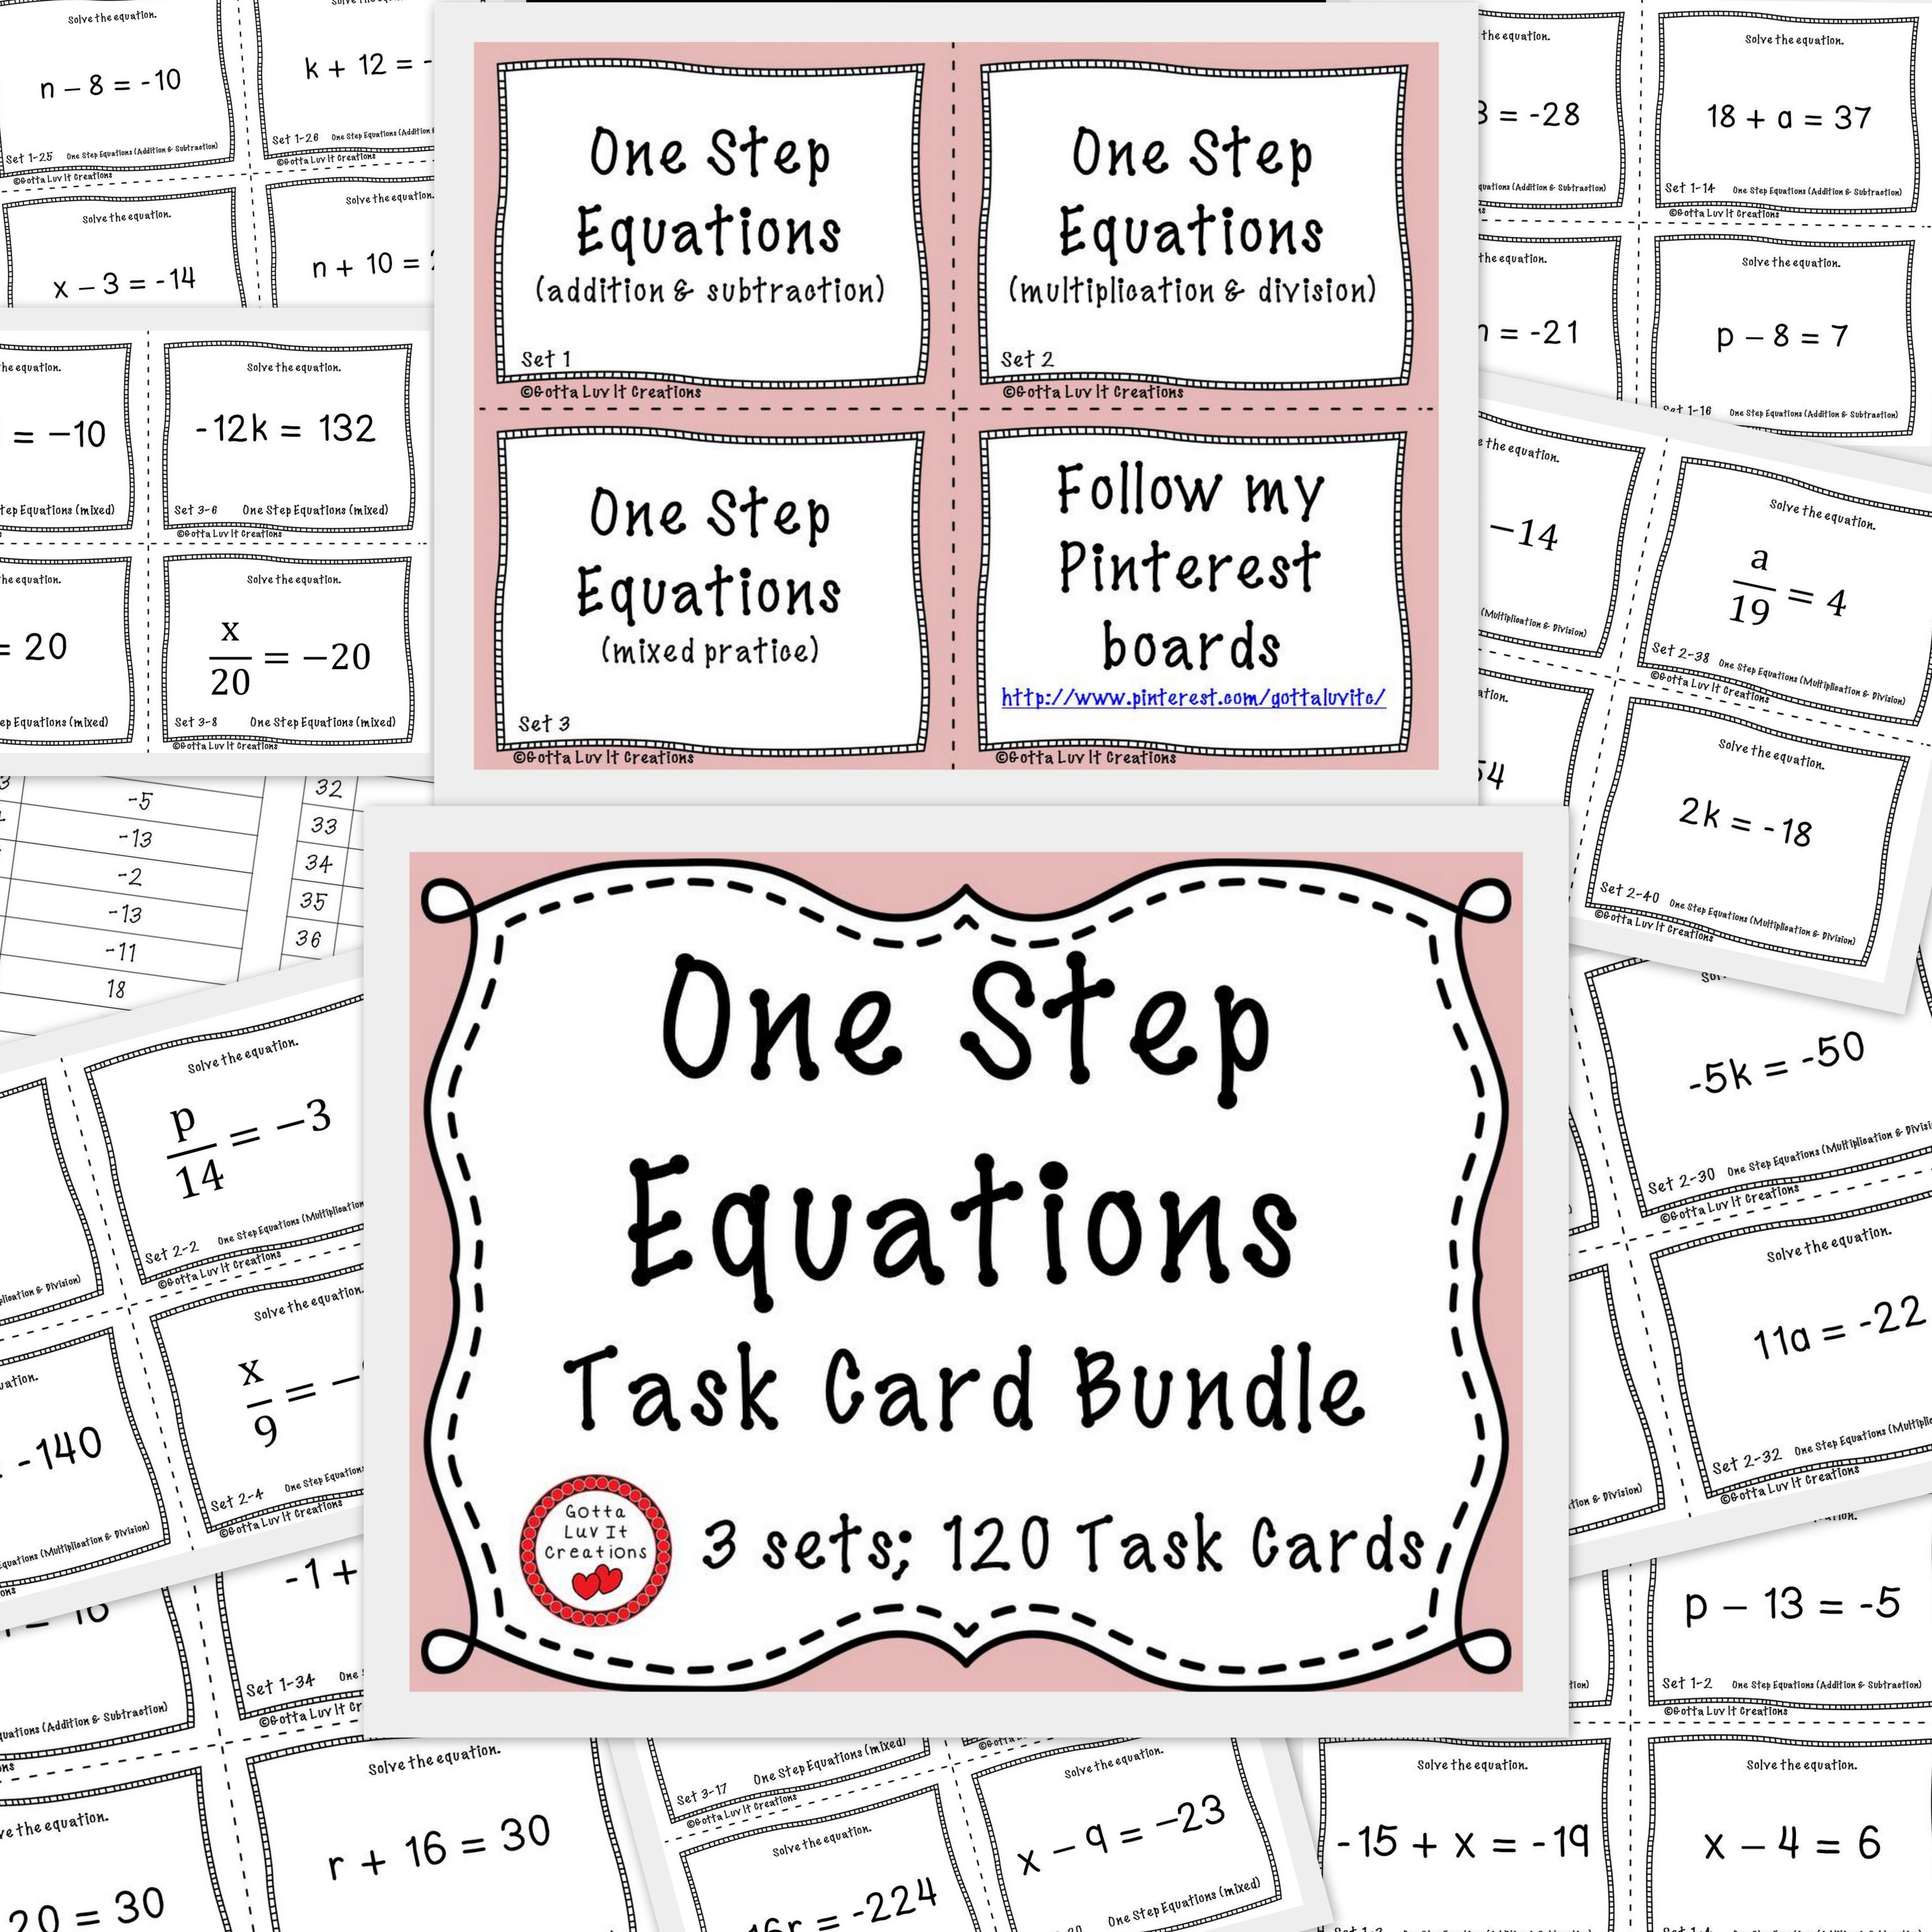 120 Task Cards 3 Sets Covering One Step Equations See